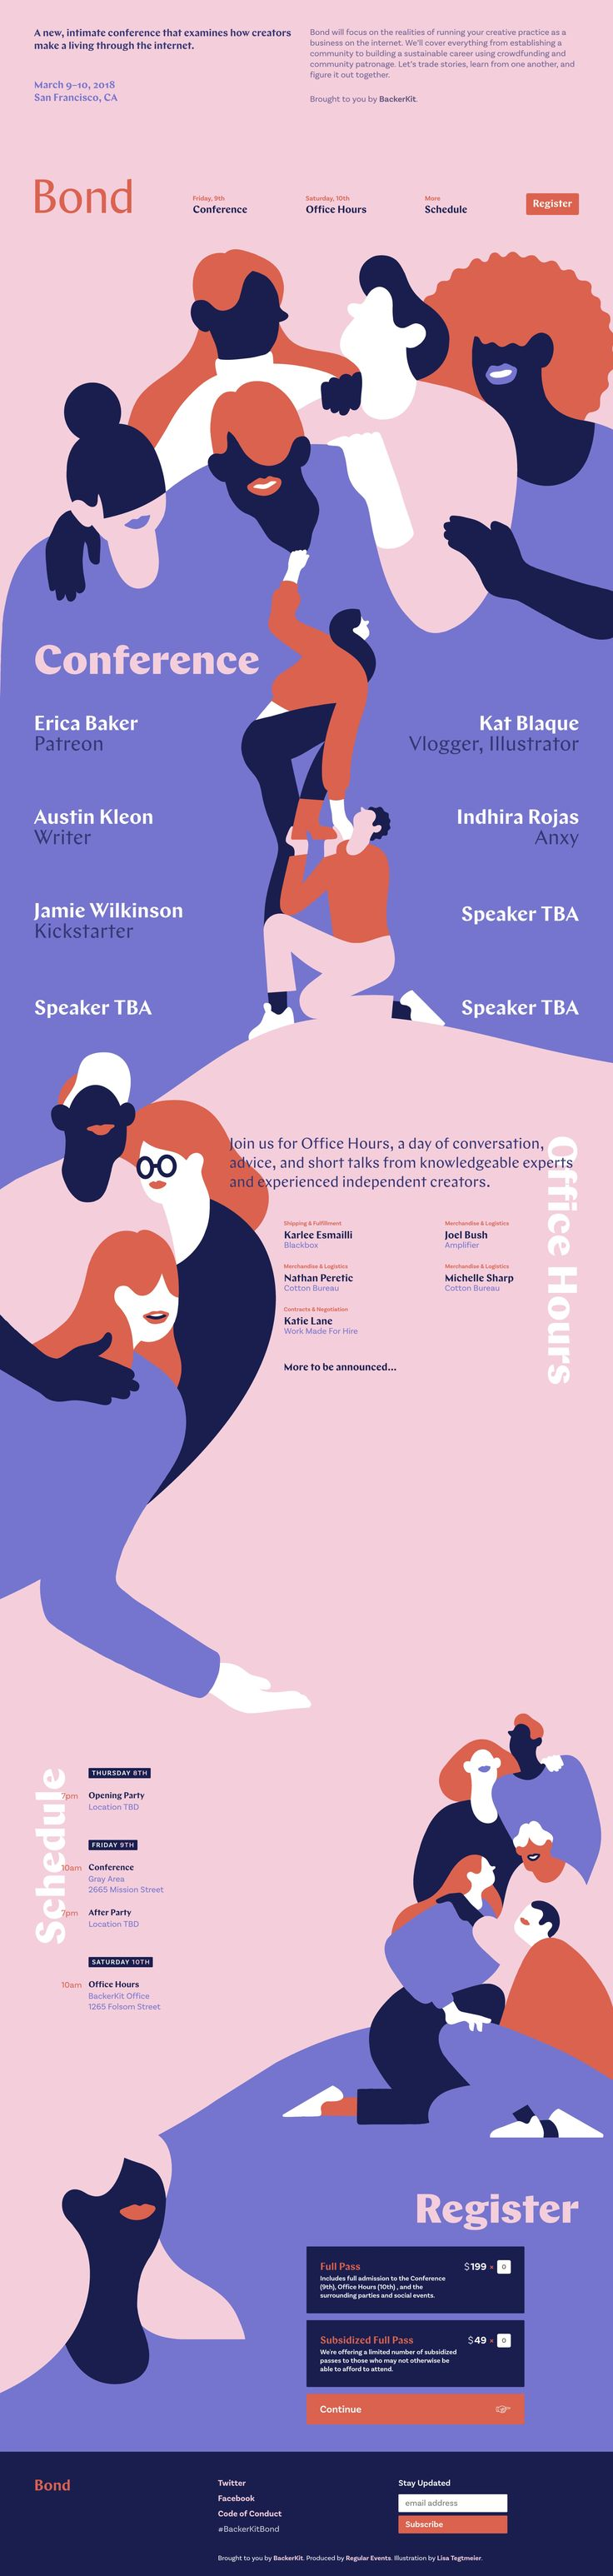 Gorgeous illustrations by Lisa Tegtmeier in this colorful One Pager promoting Bond – an event hosted by BackerKit where they discuss how creators make a living through the internet.